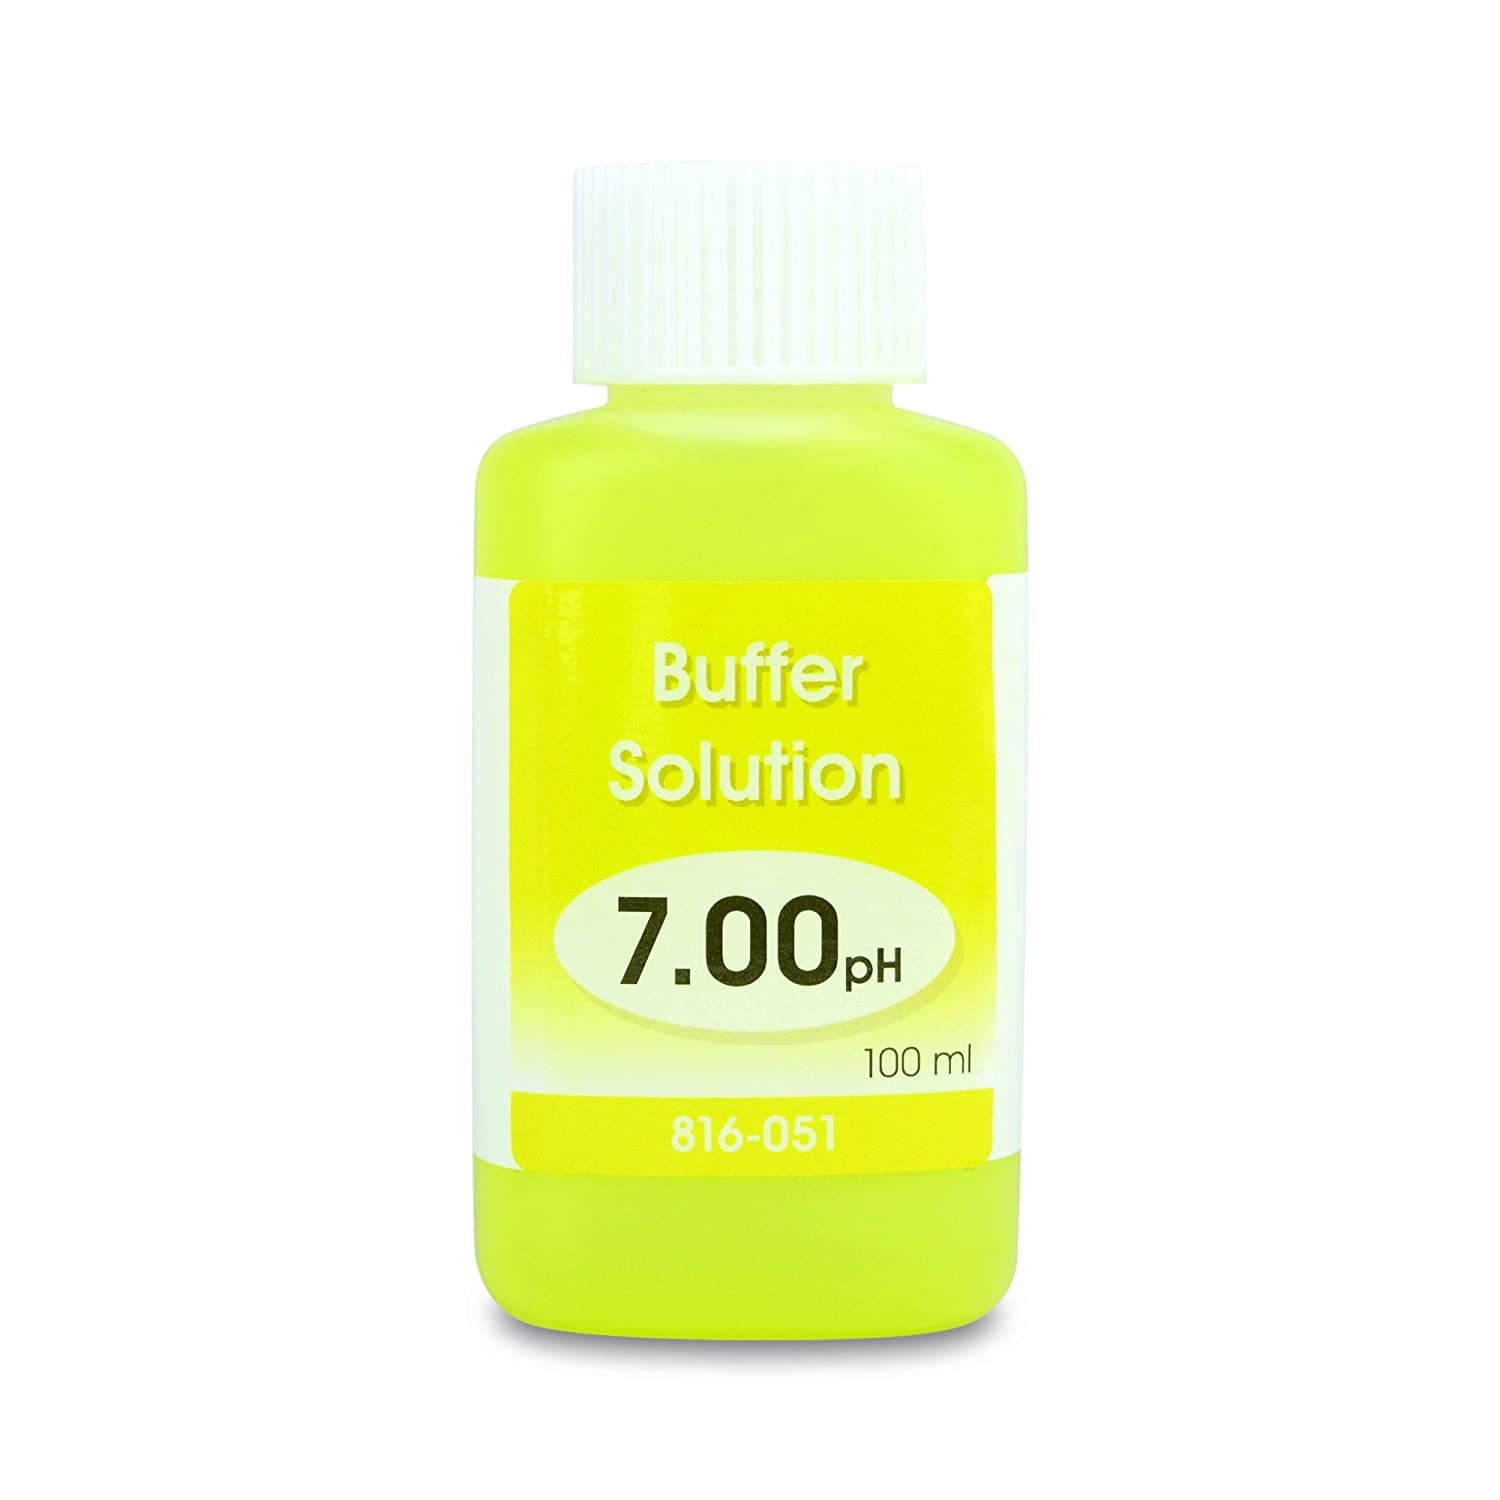 7.00 pH calibration buffer solution - 100ml ETI Ltd